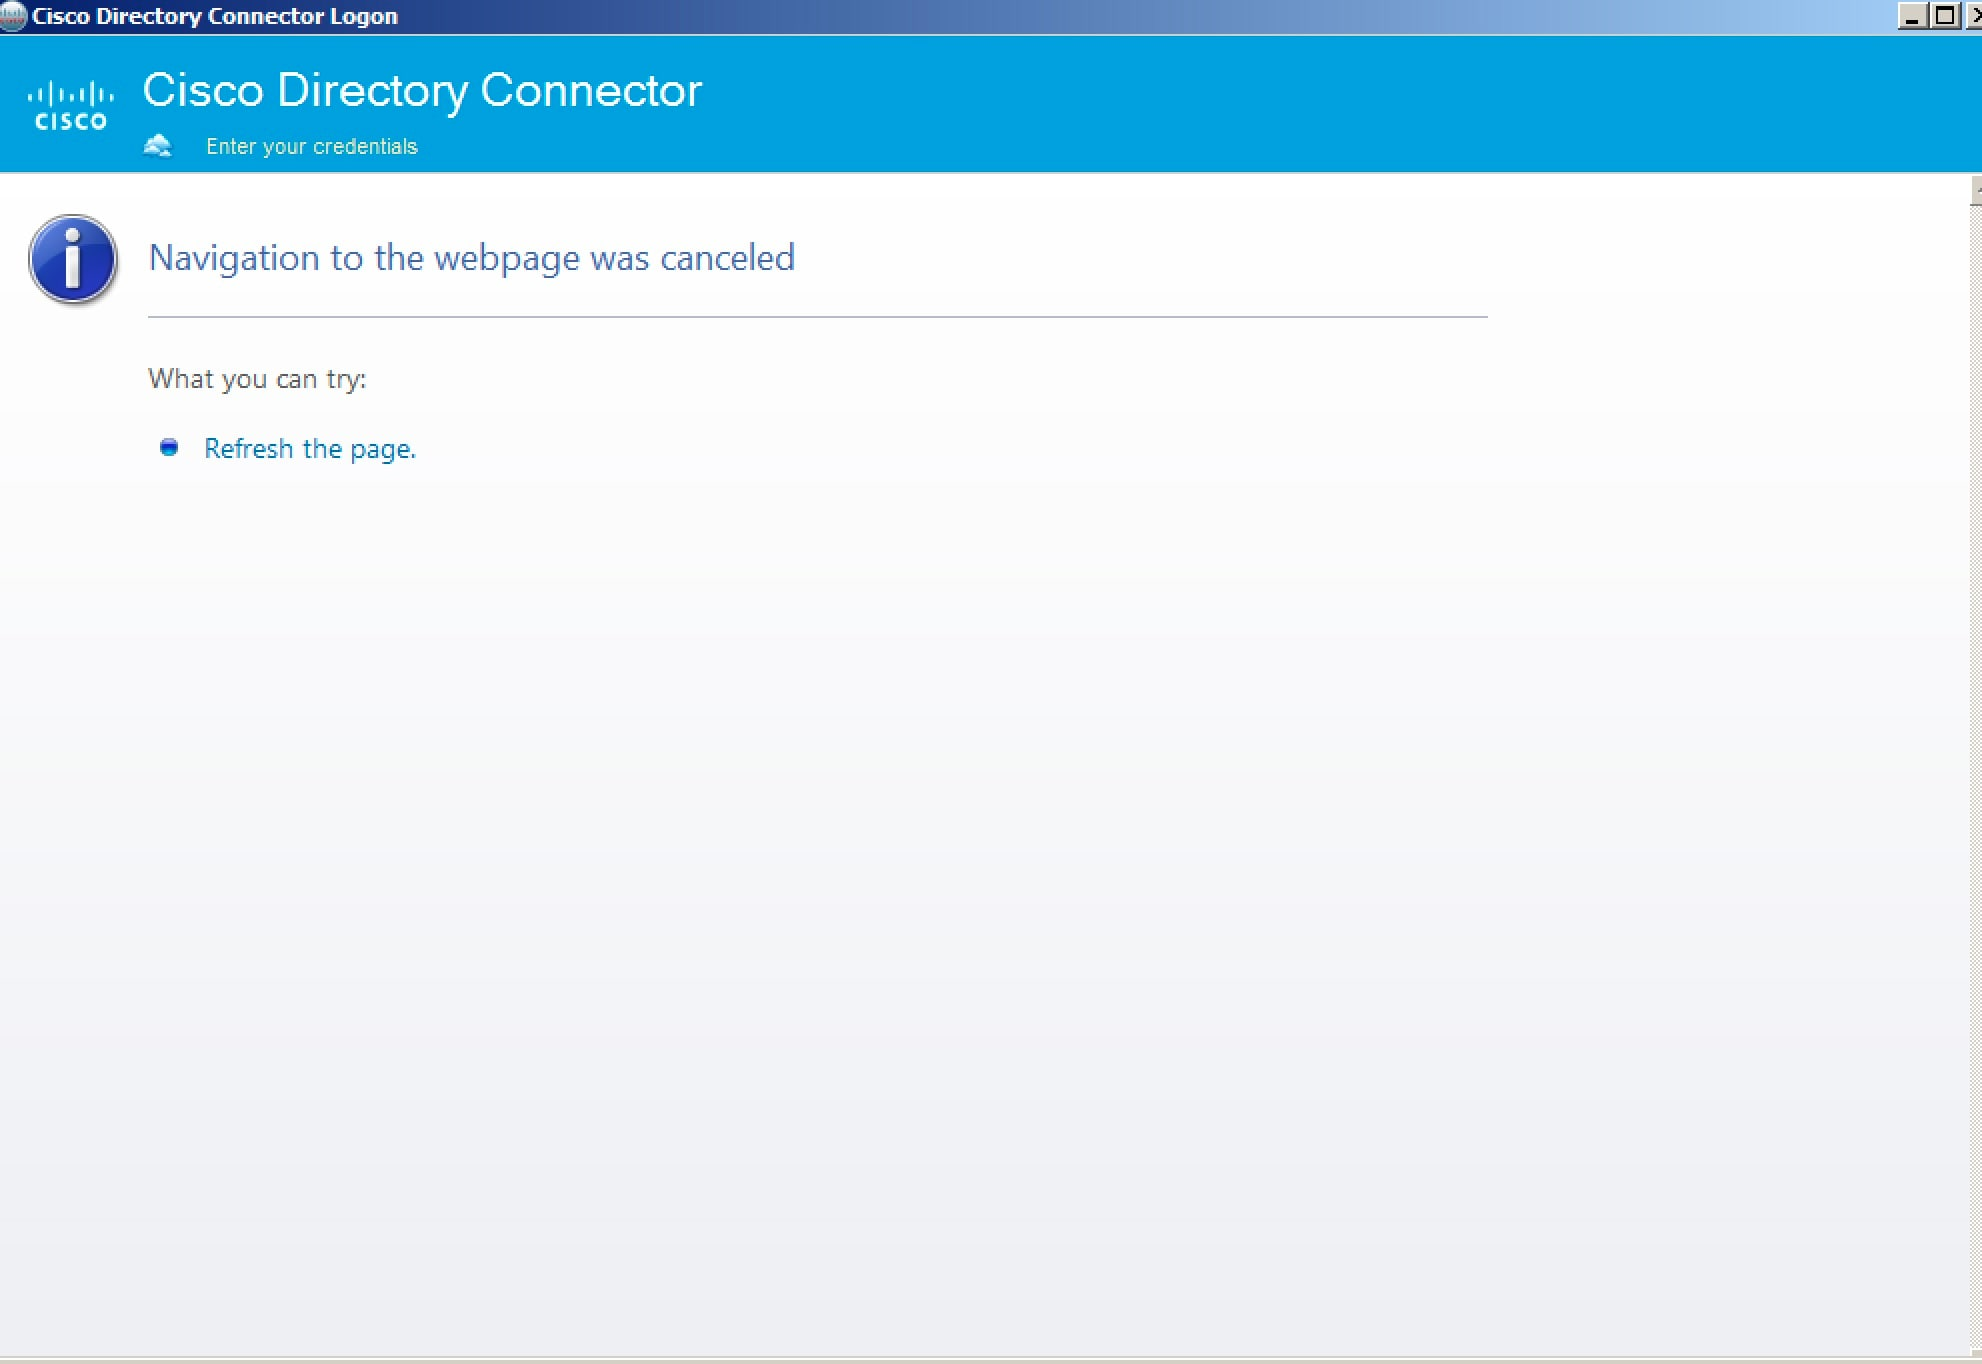 Deployment Guide for Cisco Directory Connector - Troubleshoot Cisco